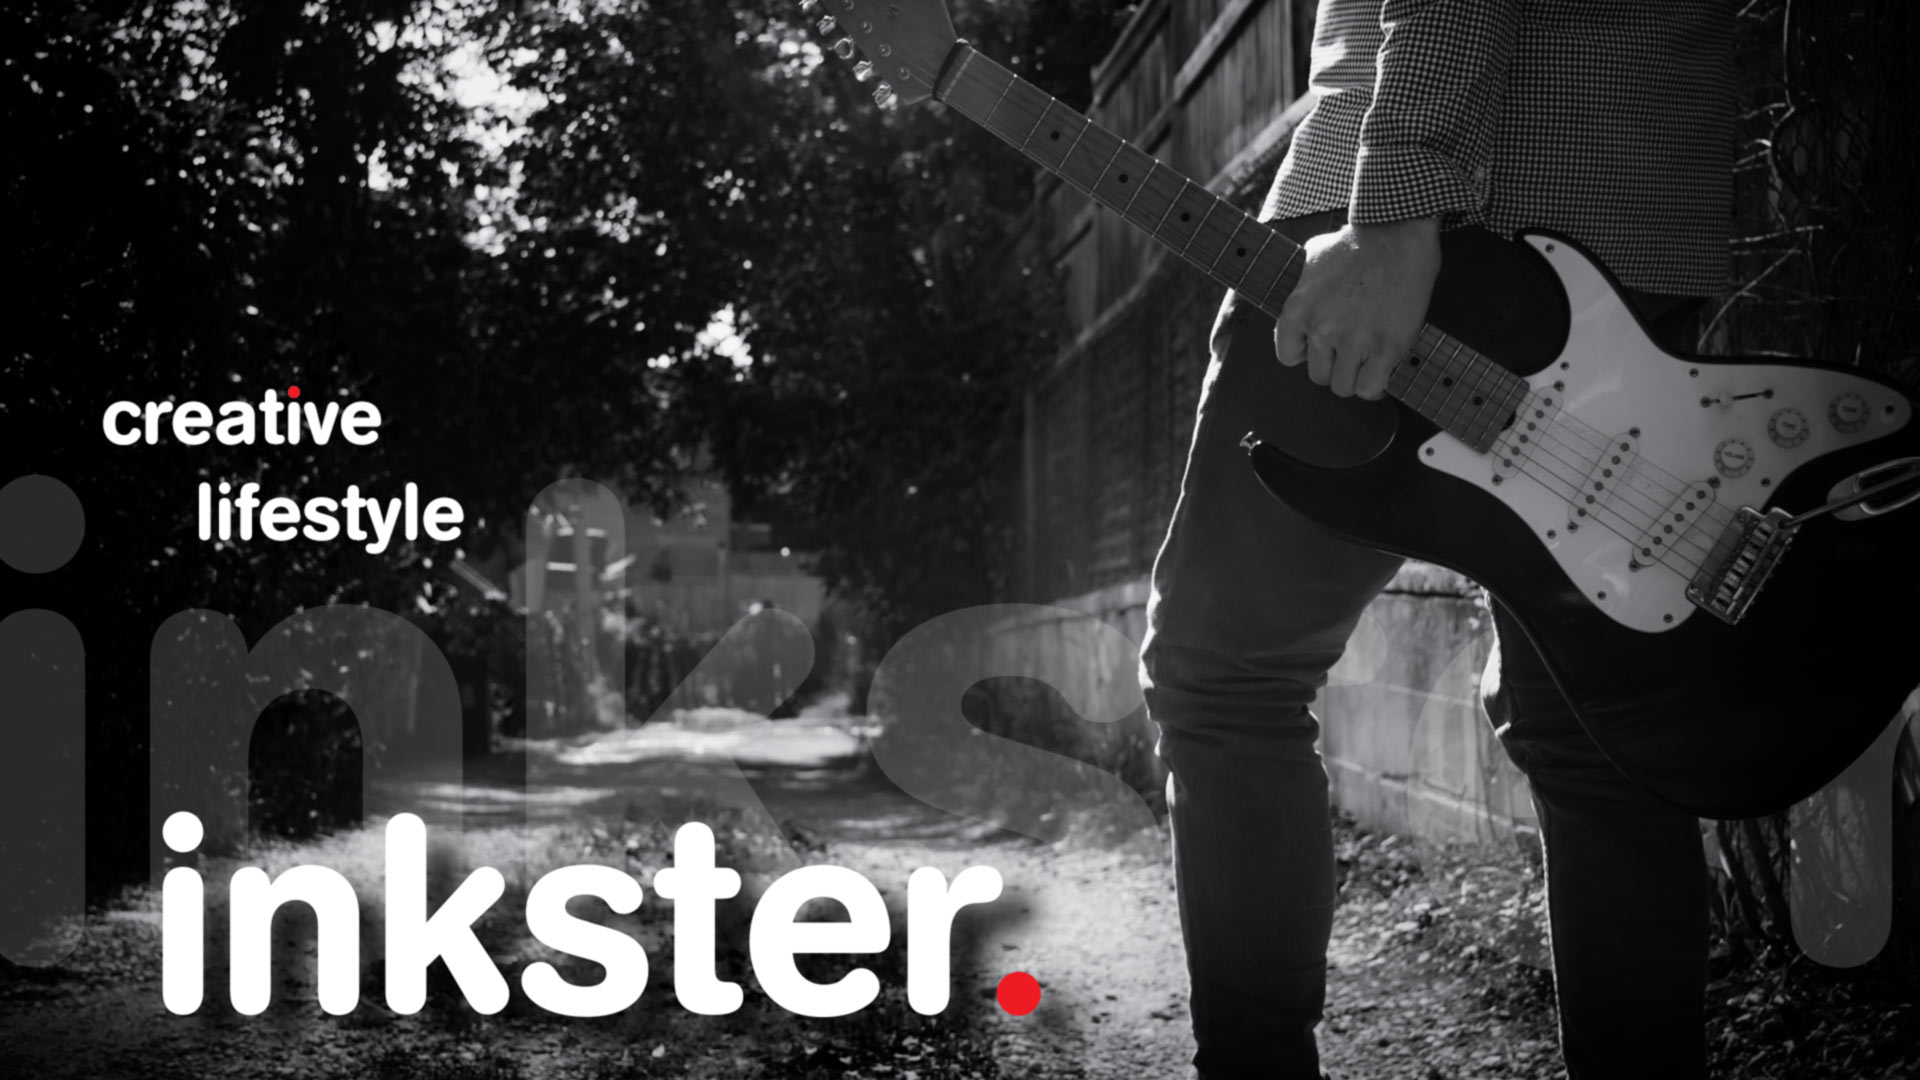 inkster-guitarist-1920x1080-creative-lifestyle-reduced